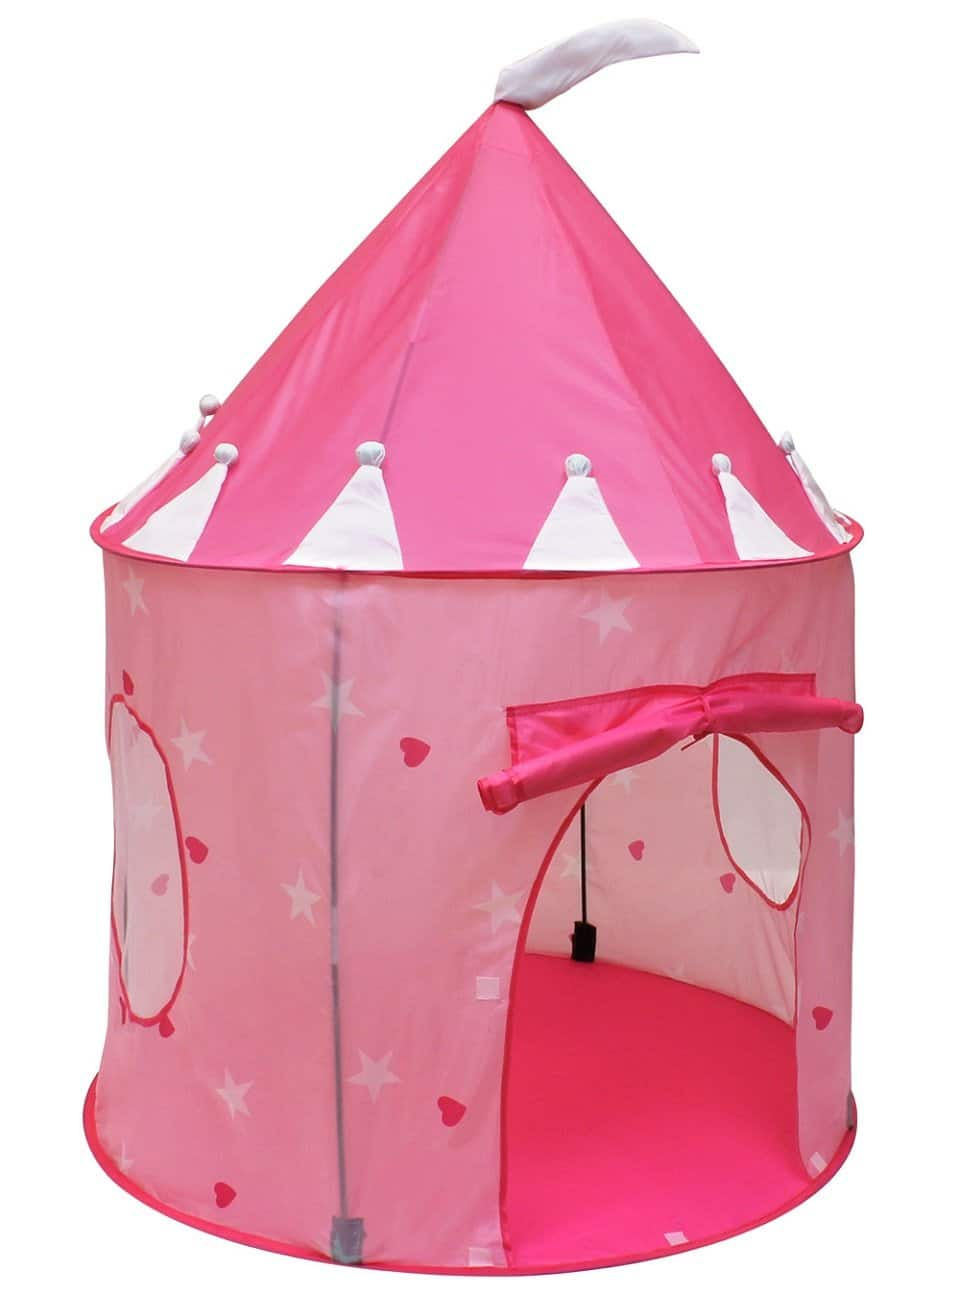 Girl's Princess Castle Play Tent, Pink $17.99 FREE SHIPPING